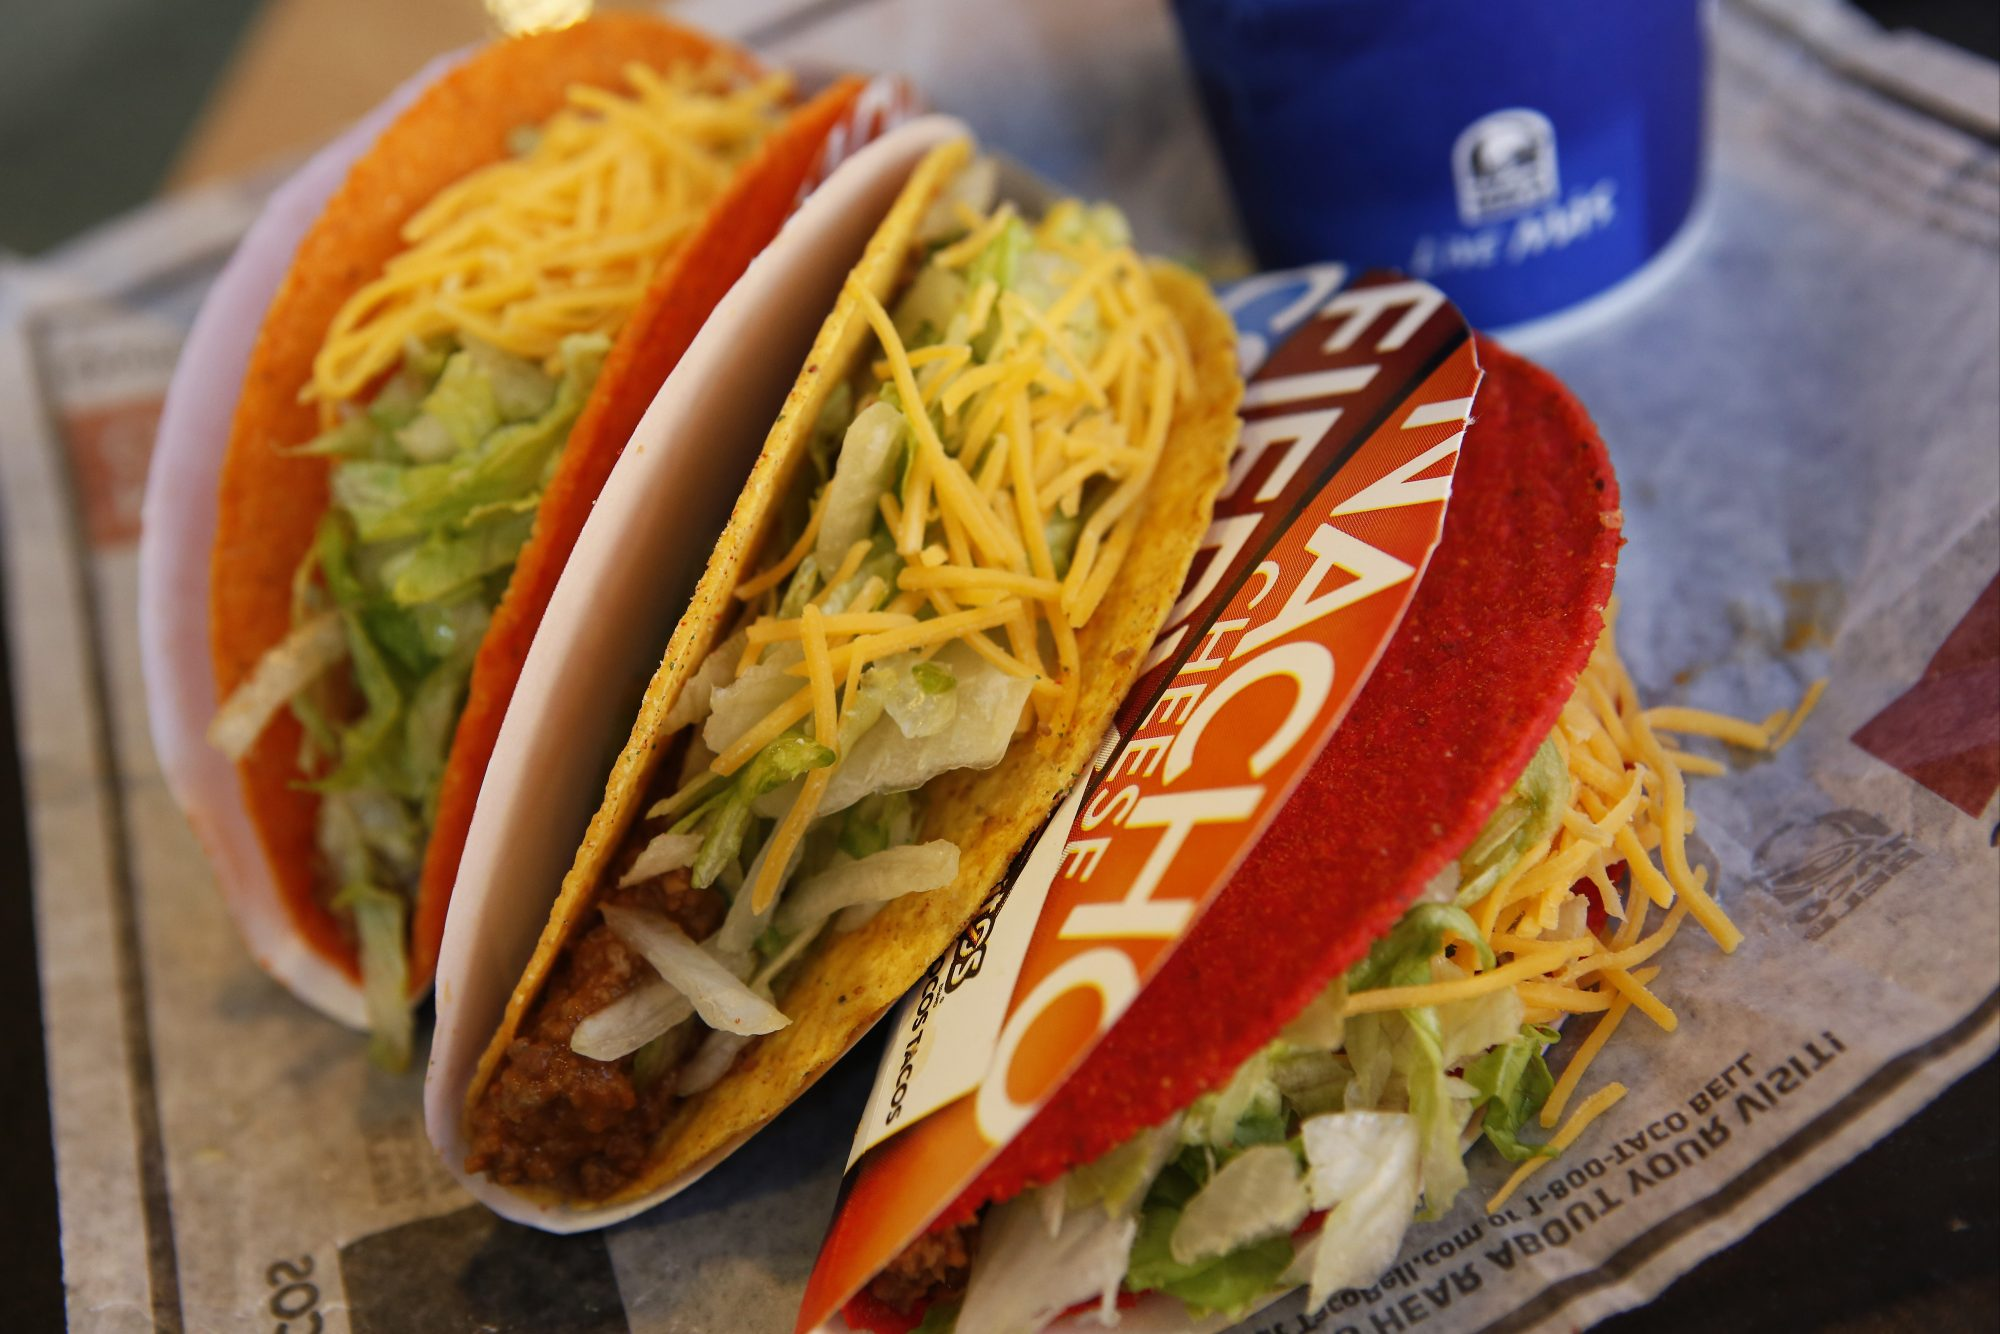 Taco Bell Weddings Are on the Rise